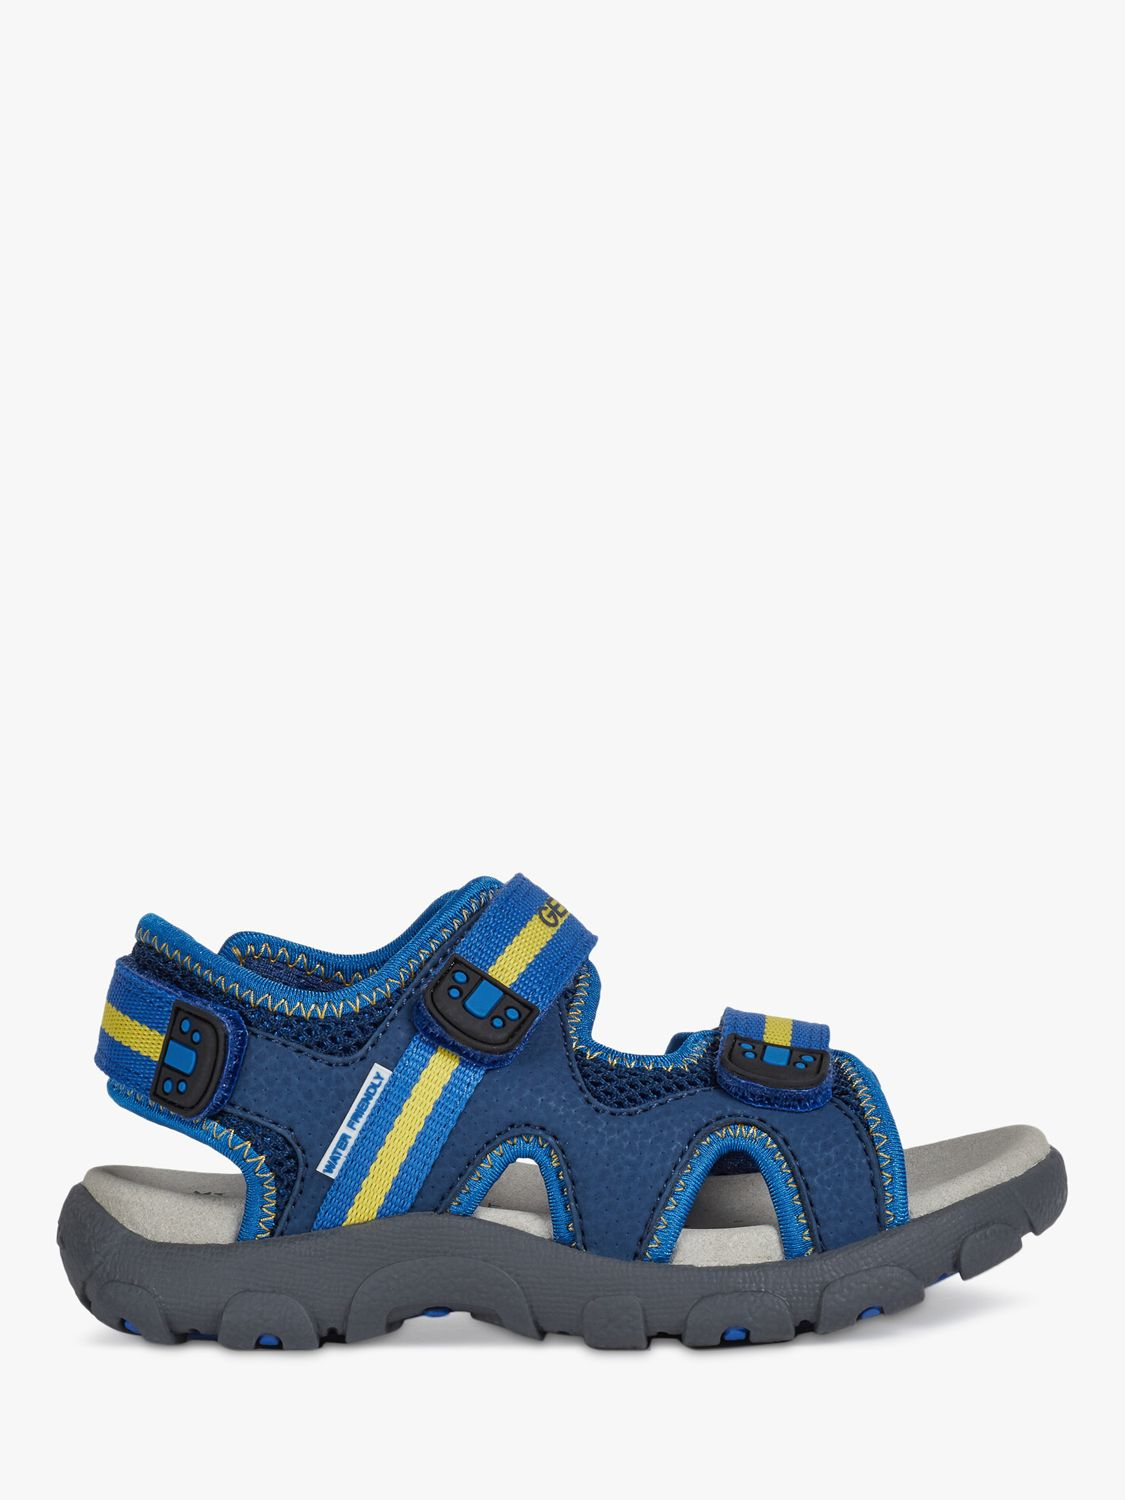 Geox Geox Children's Strada Riptape Sandals, Blue/Yellow